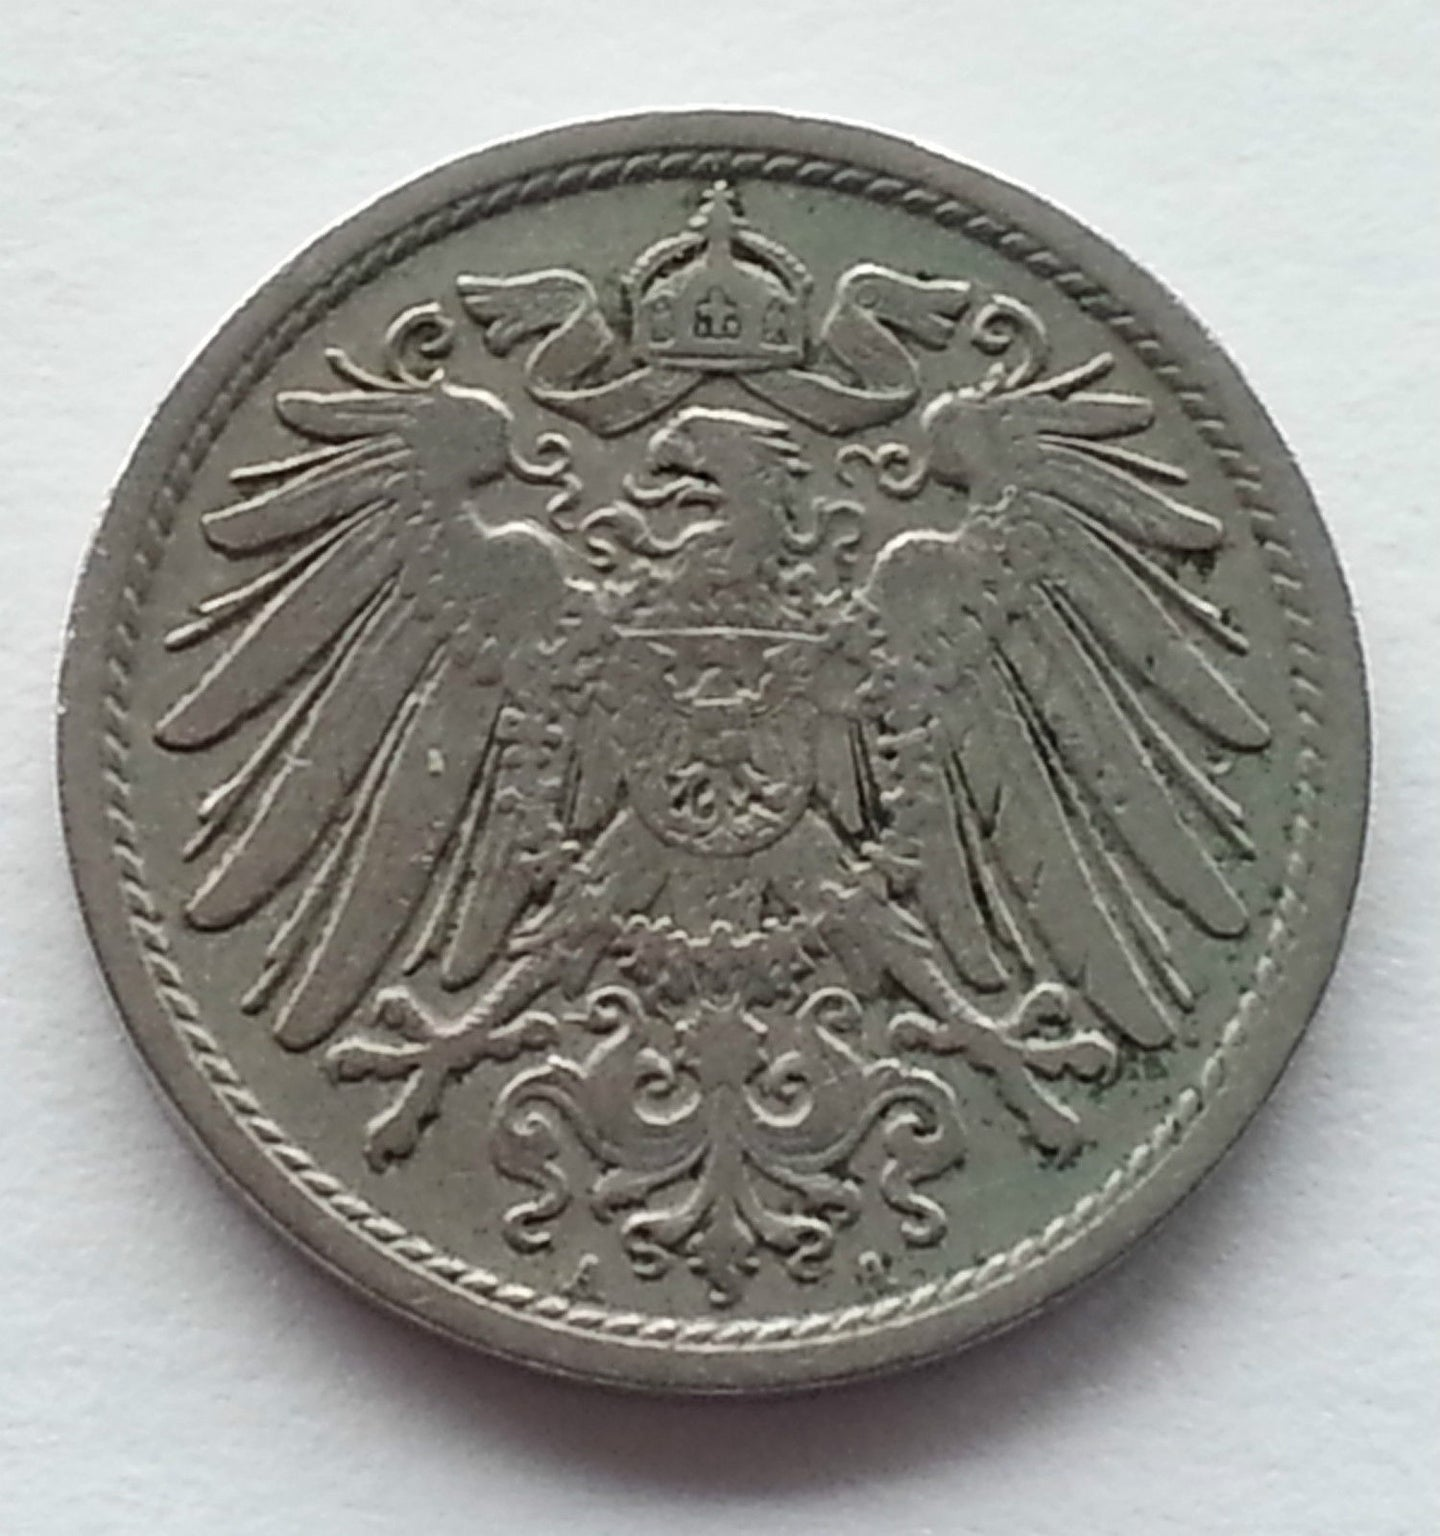 Antique 1906 coin 10 phenning Kaizer Deutsches reich Germany Second Reich